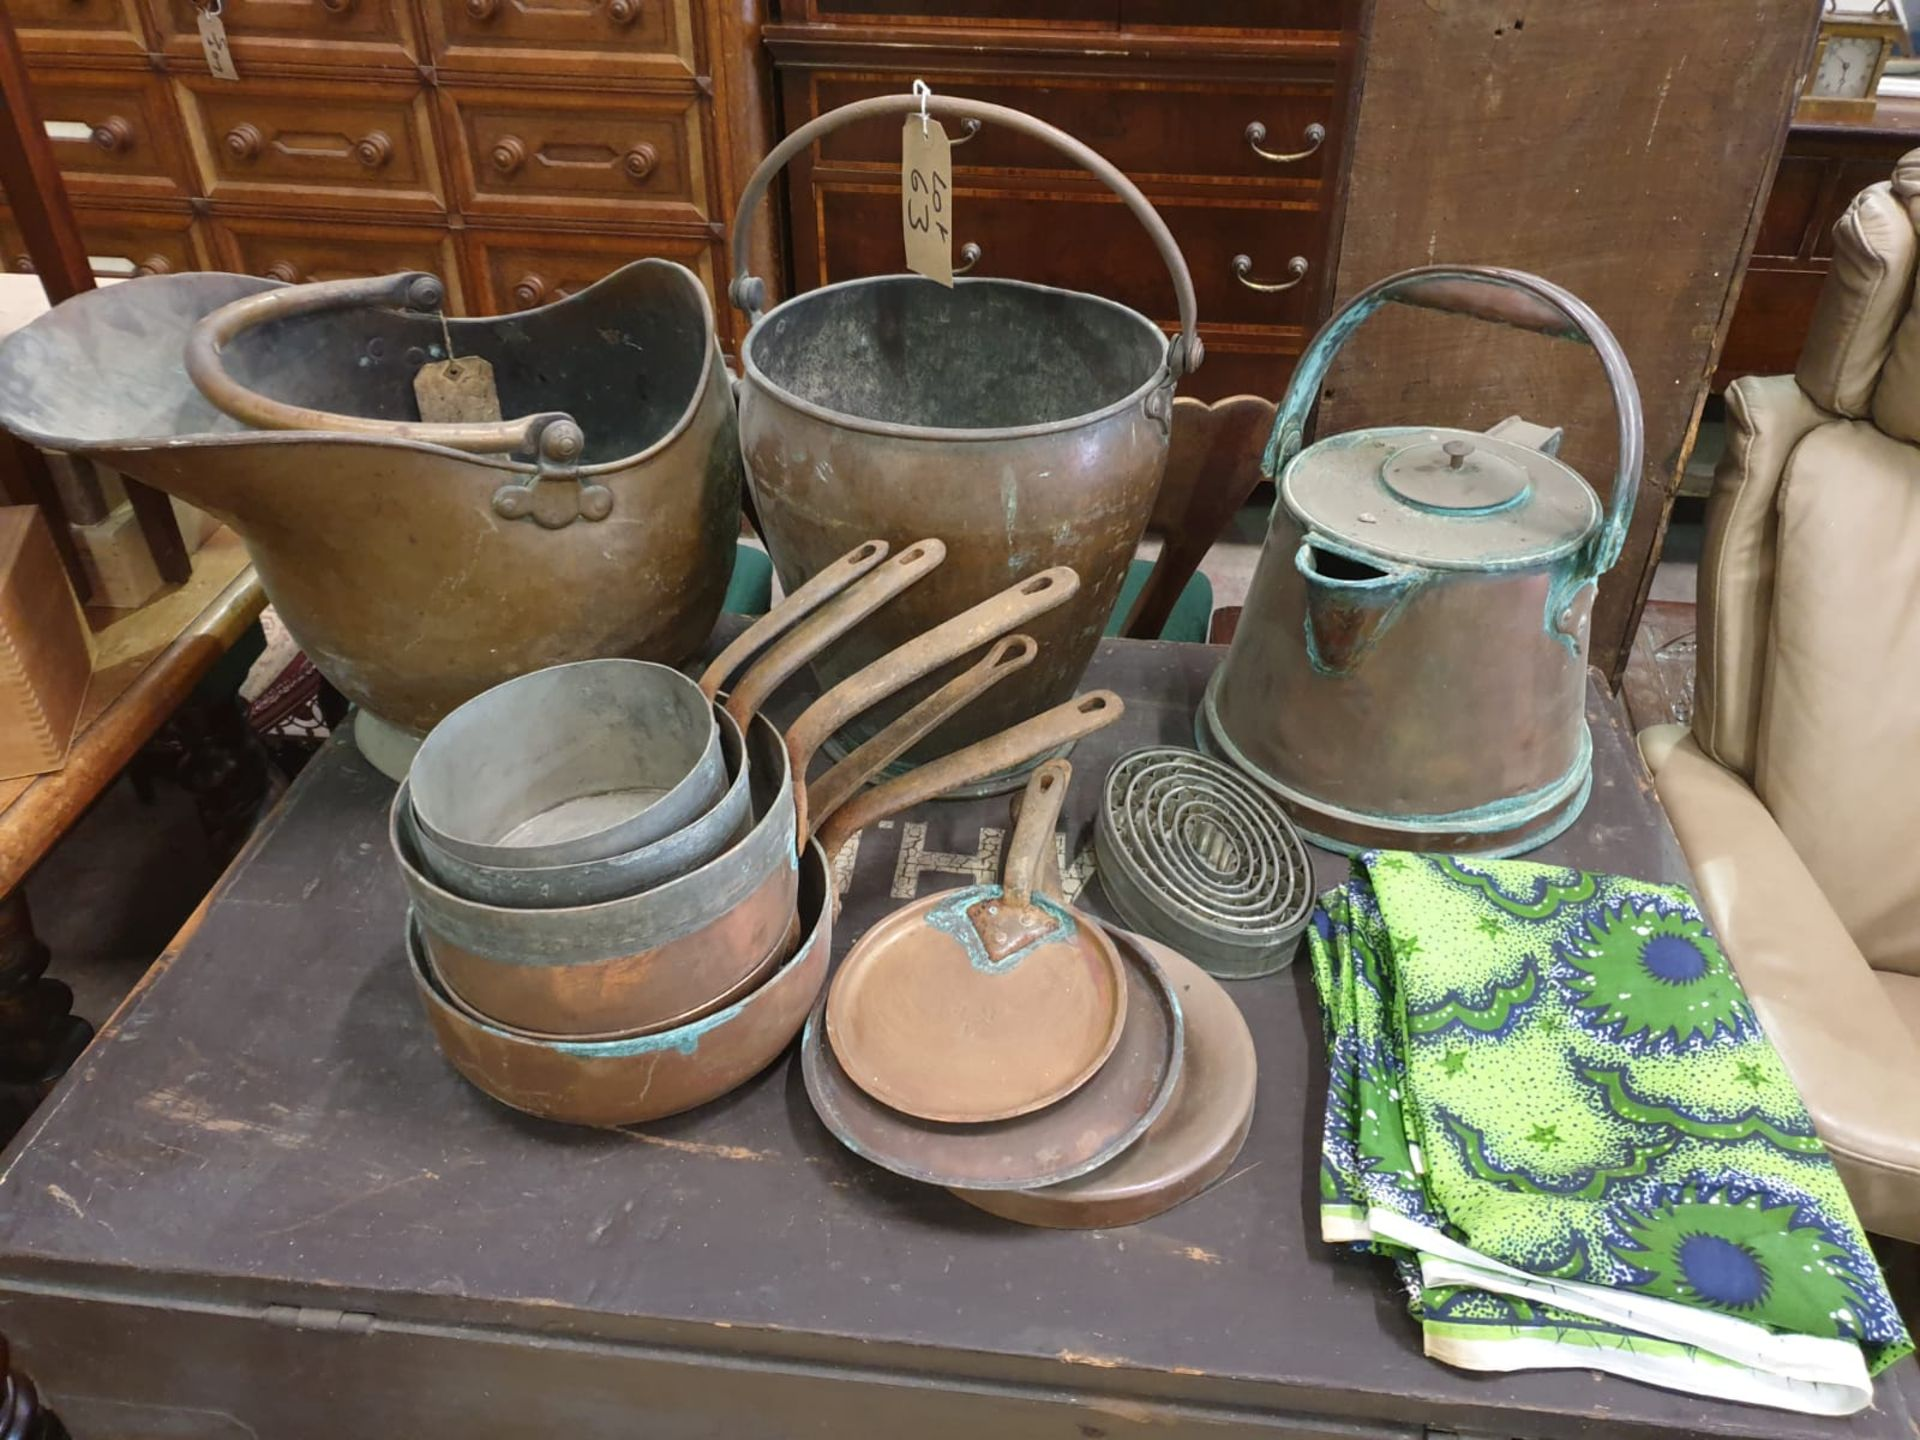 A large quantity of copperwear as found comprising bucket, pale, kettle, pans and skillets